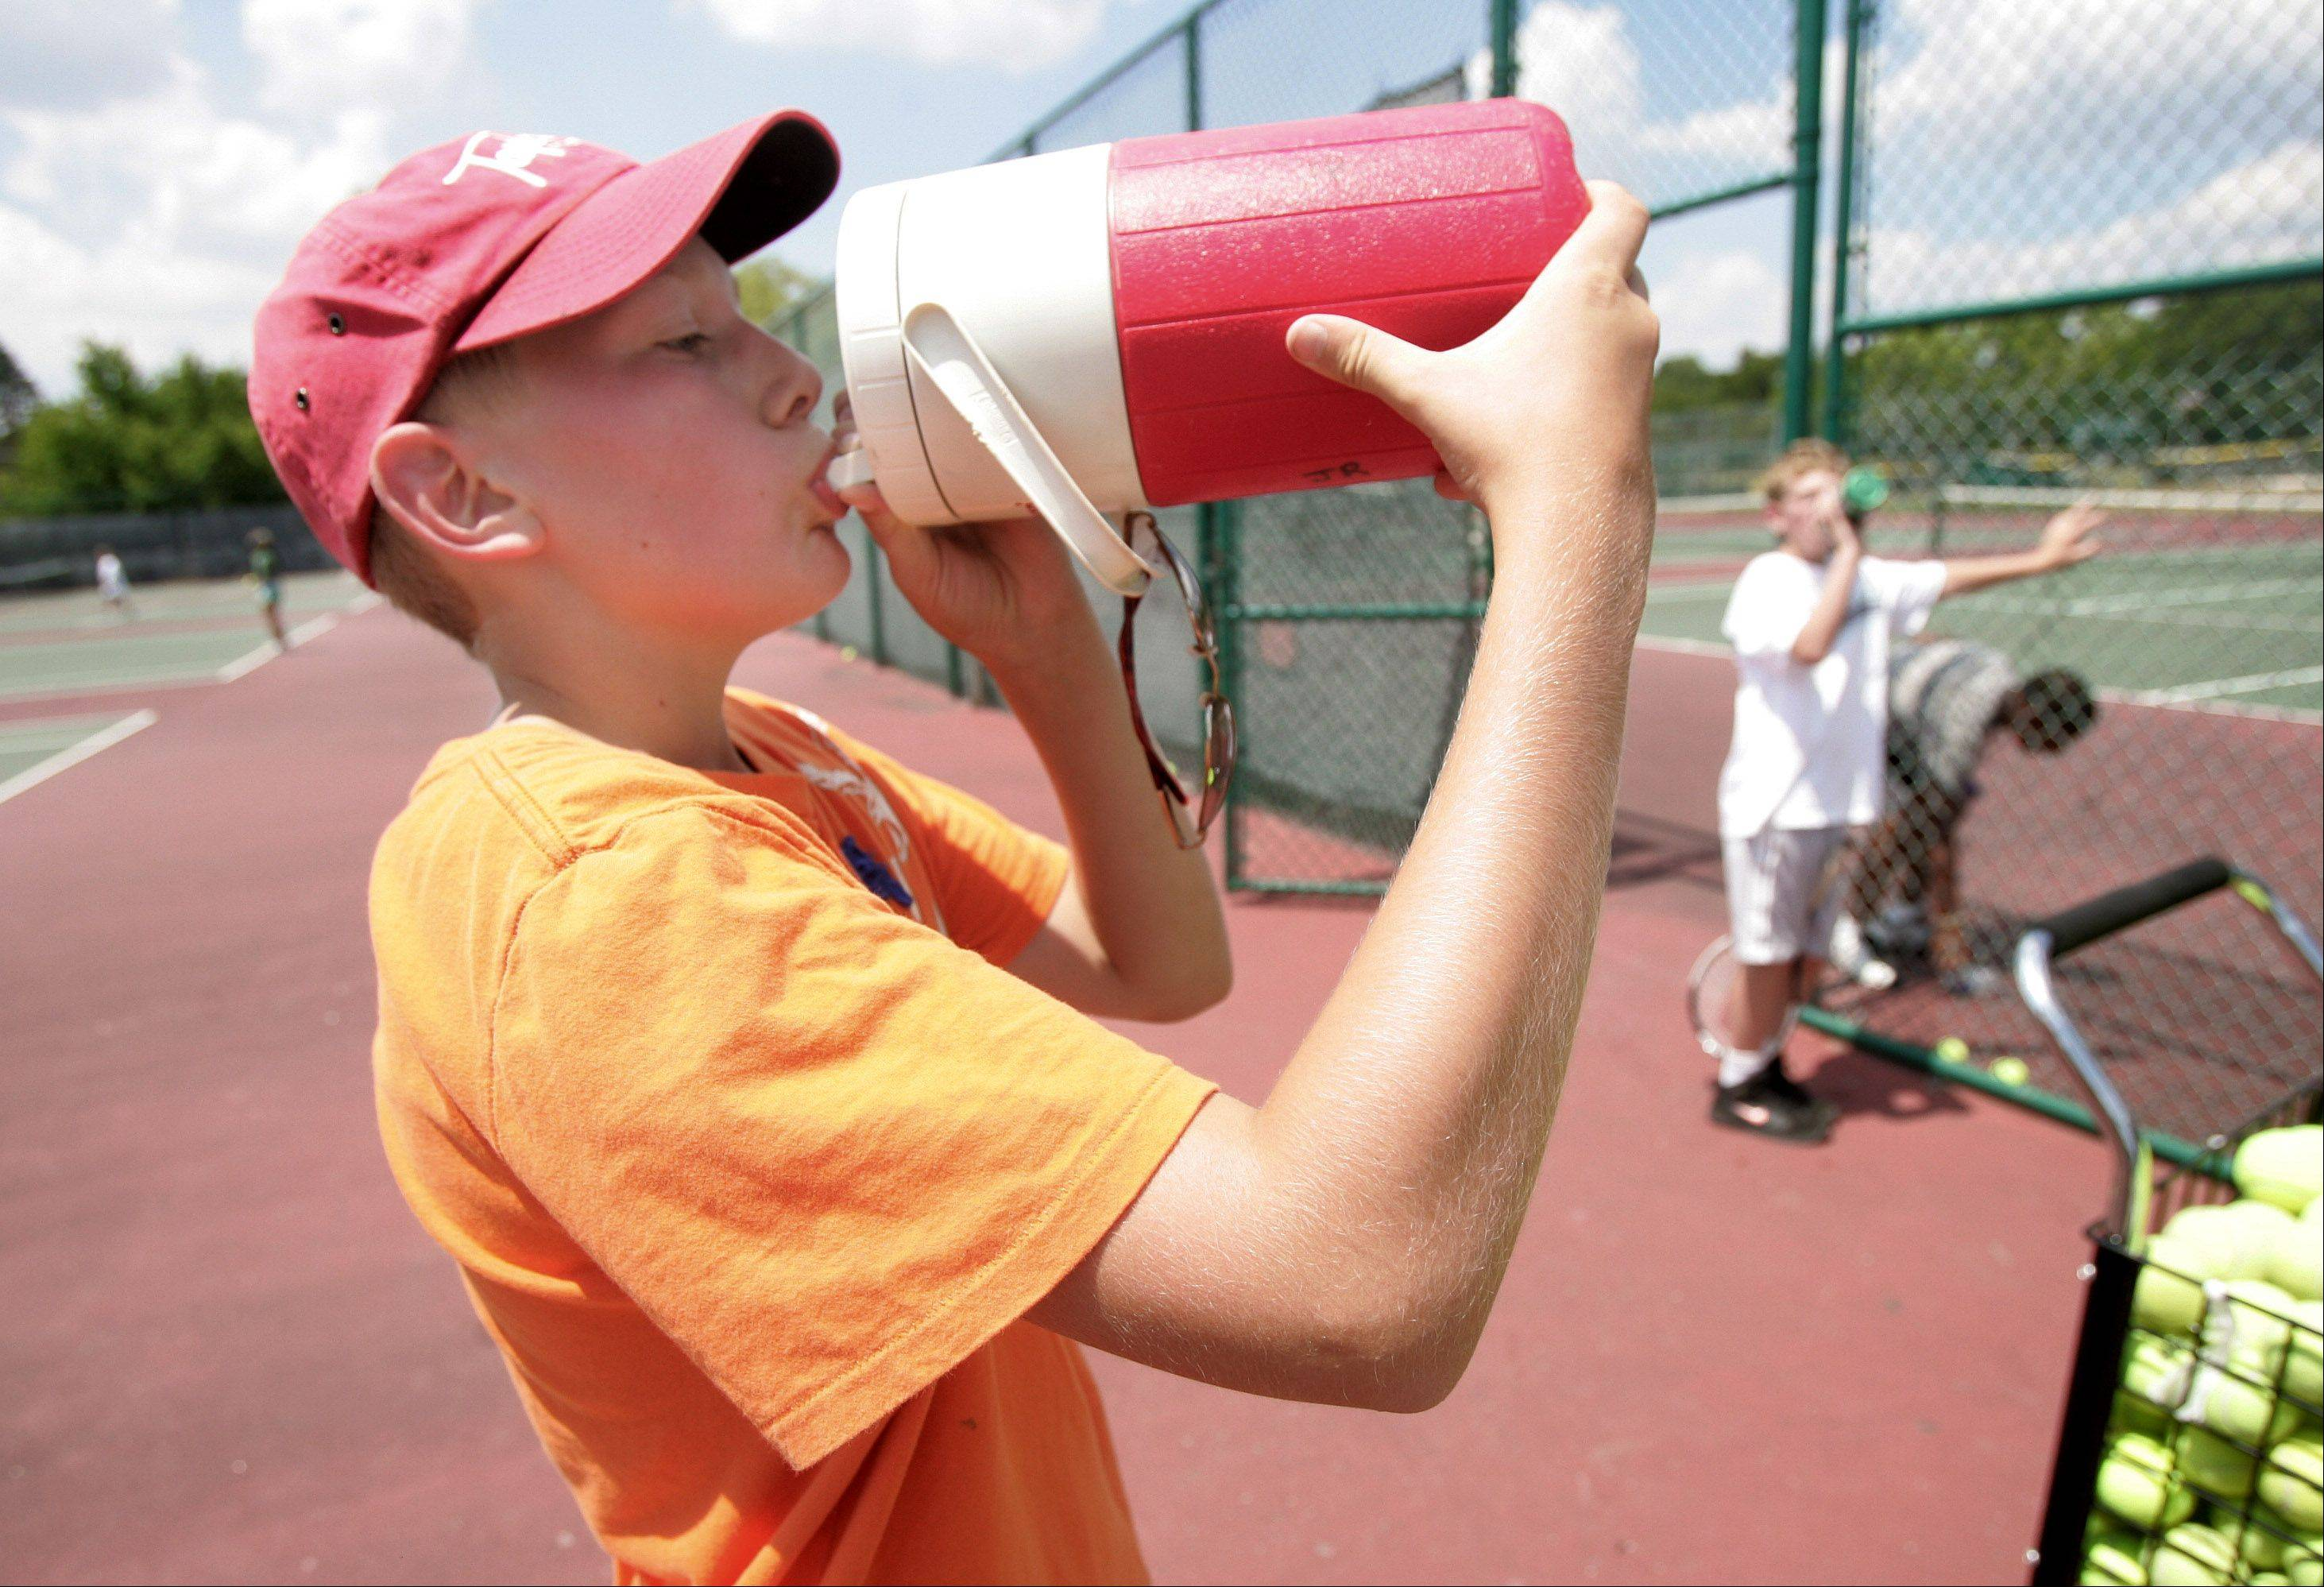 Jake Ryan, 11, of Round Lake, stops to drink water after playing tennis at Grayslake High School's summer tennis camp Tuesday.